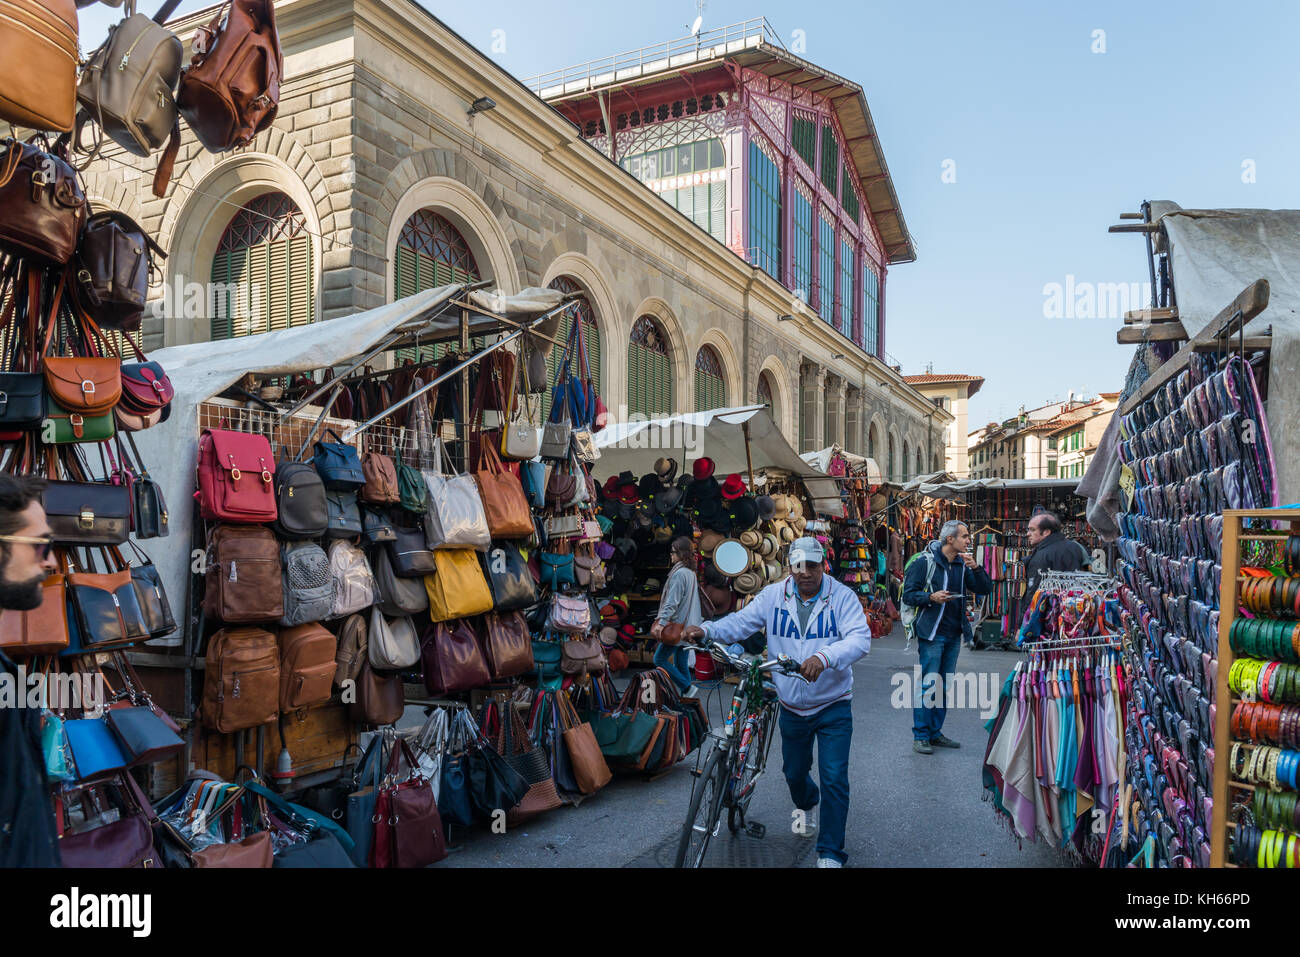 Street market in Florence, Tuscany, Italy in front of the Mercato Centrale - Stock Image